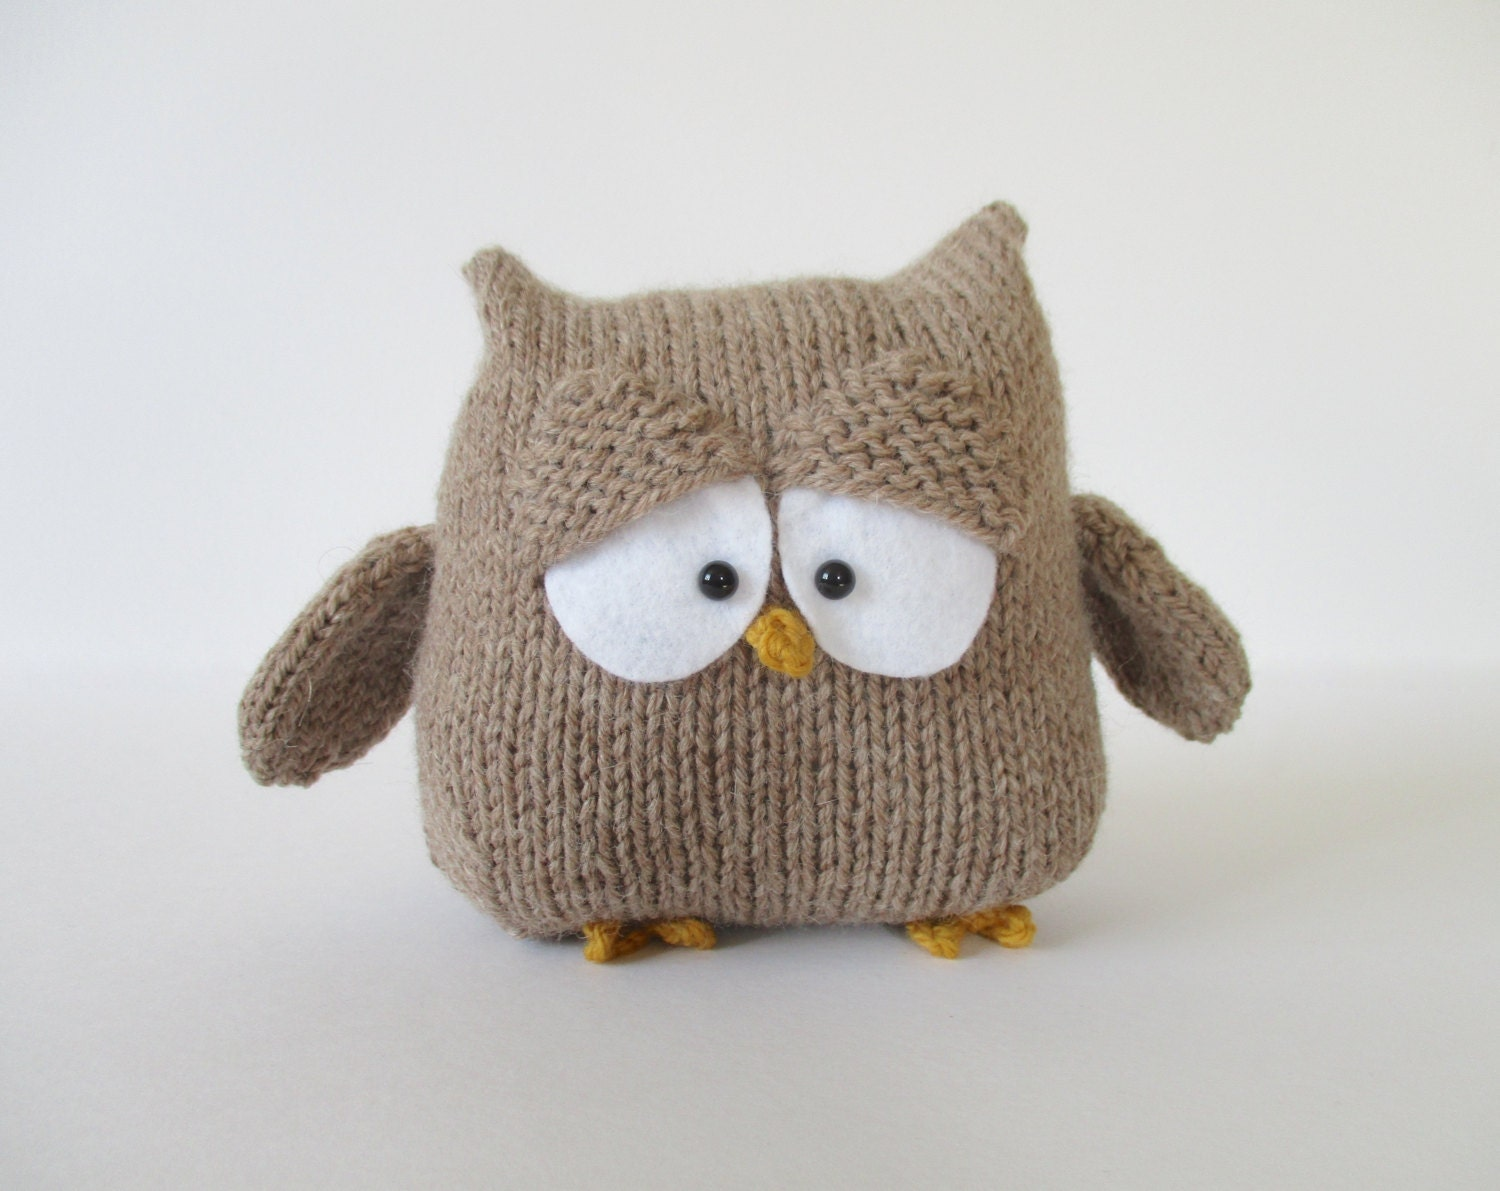 Disney Knitting Patterns Free : Oscar the Owl toy knitting patterns